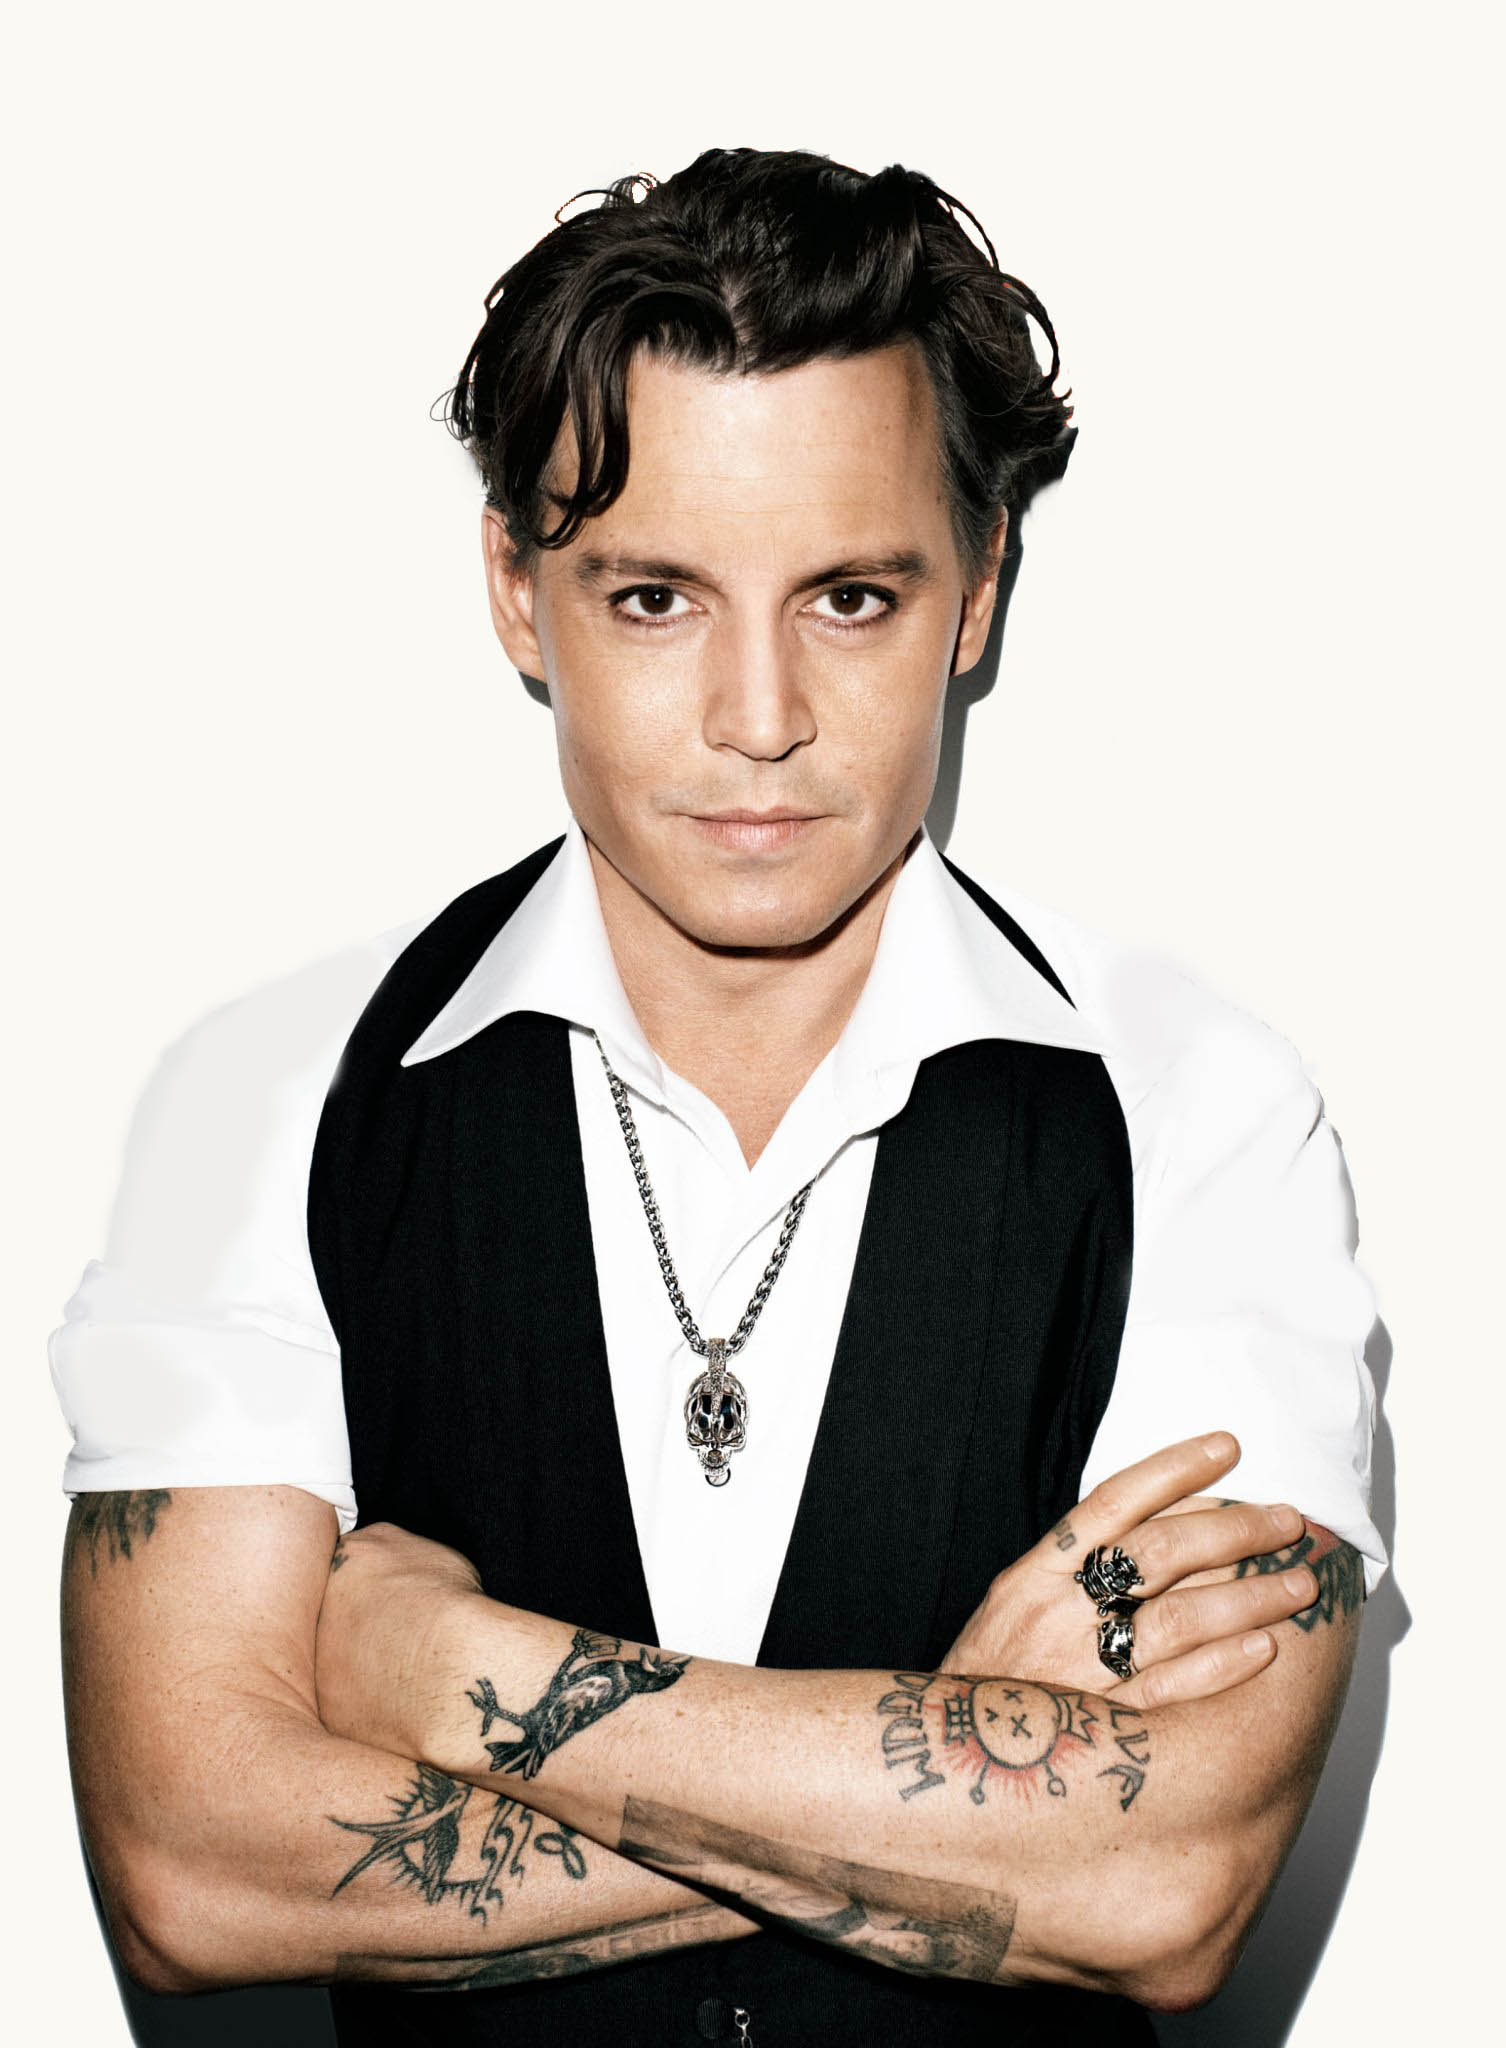 Short hairstyles dark hair 2017 fashion and women - Johnny Depp Without Text Vanity Fair Cover Johnny Depp